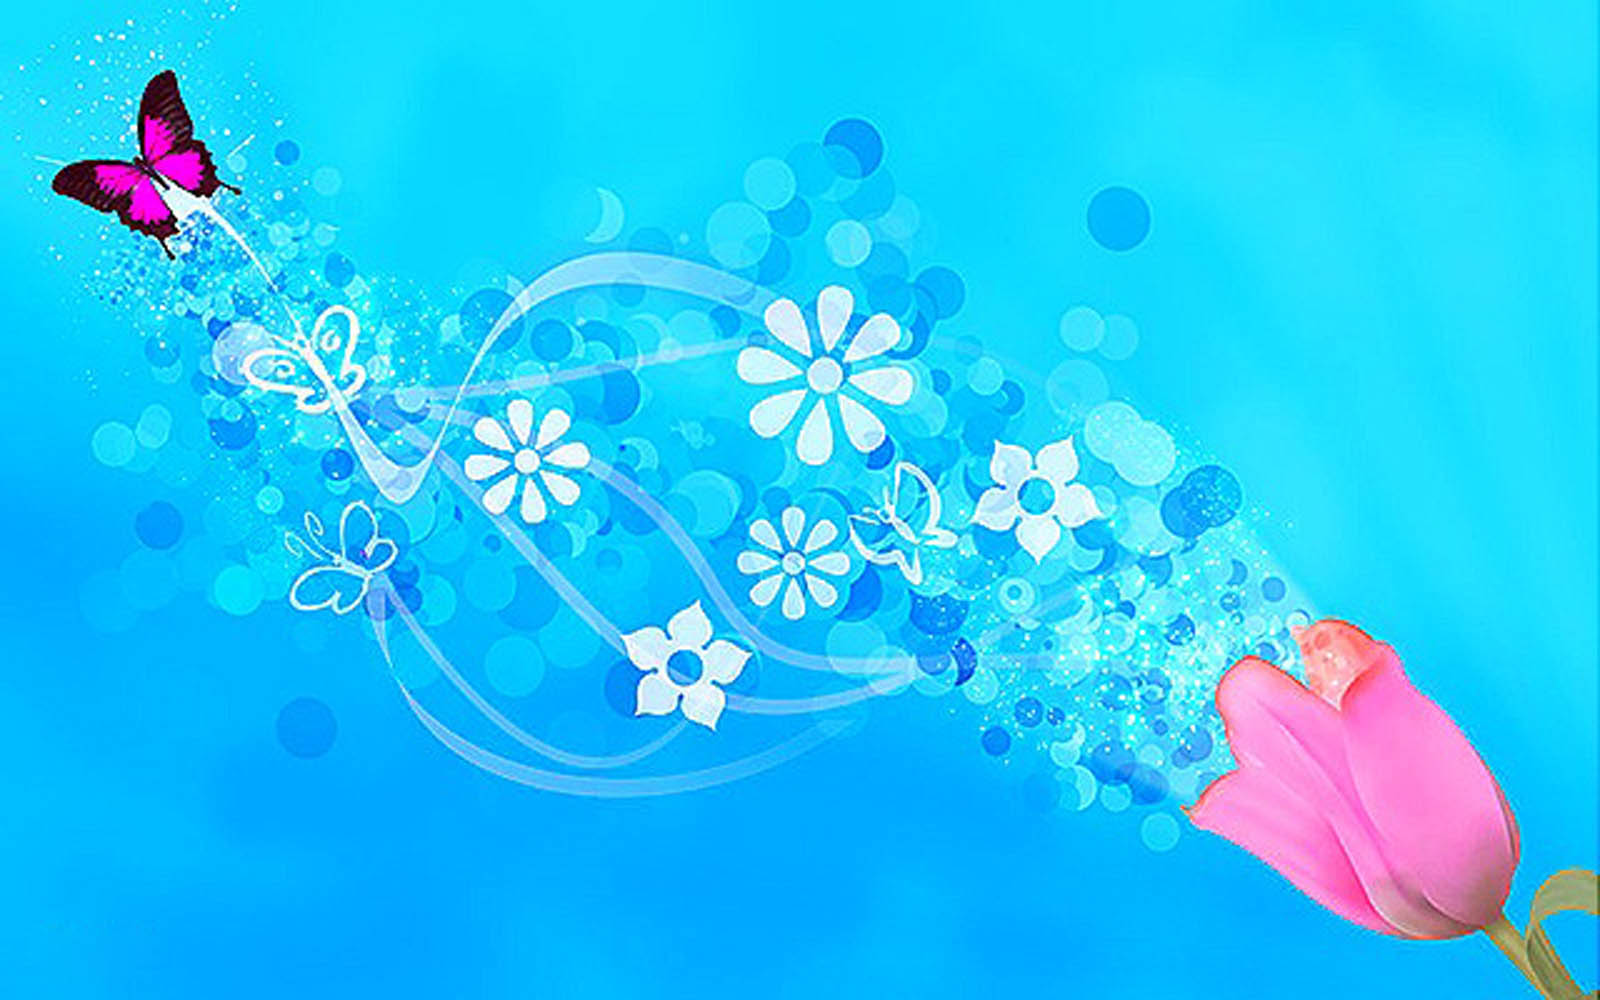 background vector wallpaper art - photo #30